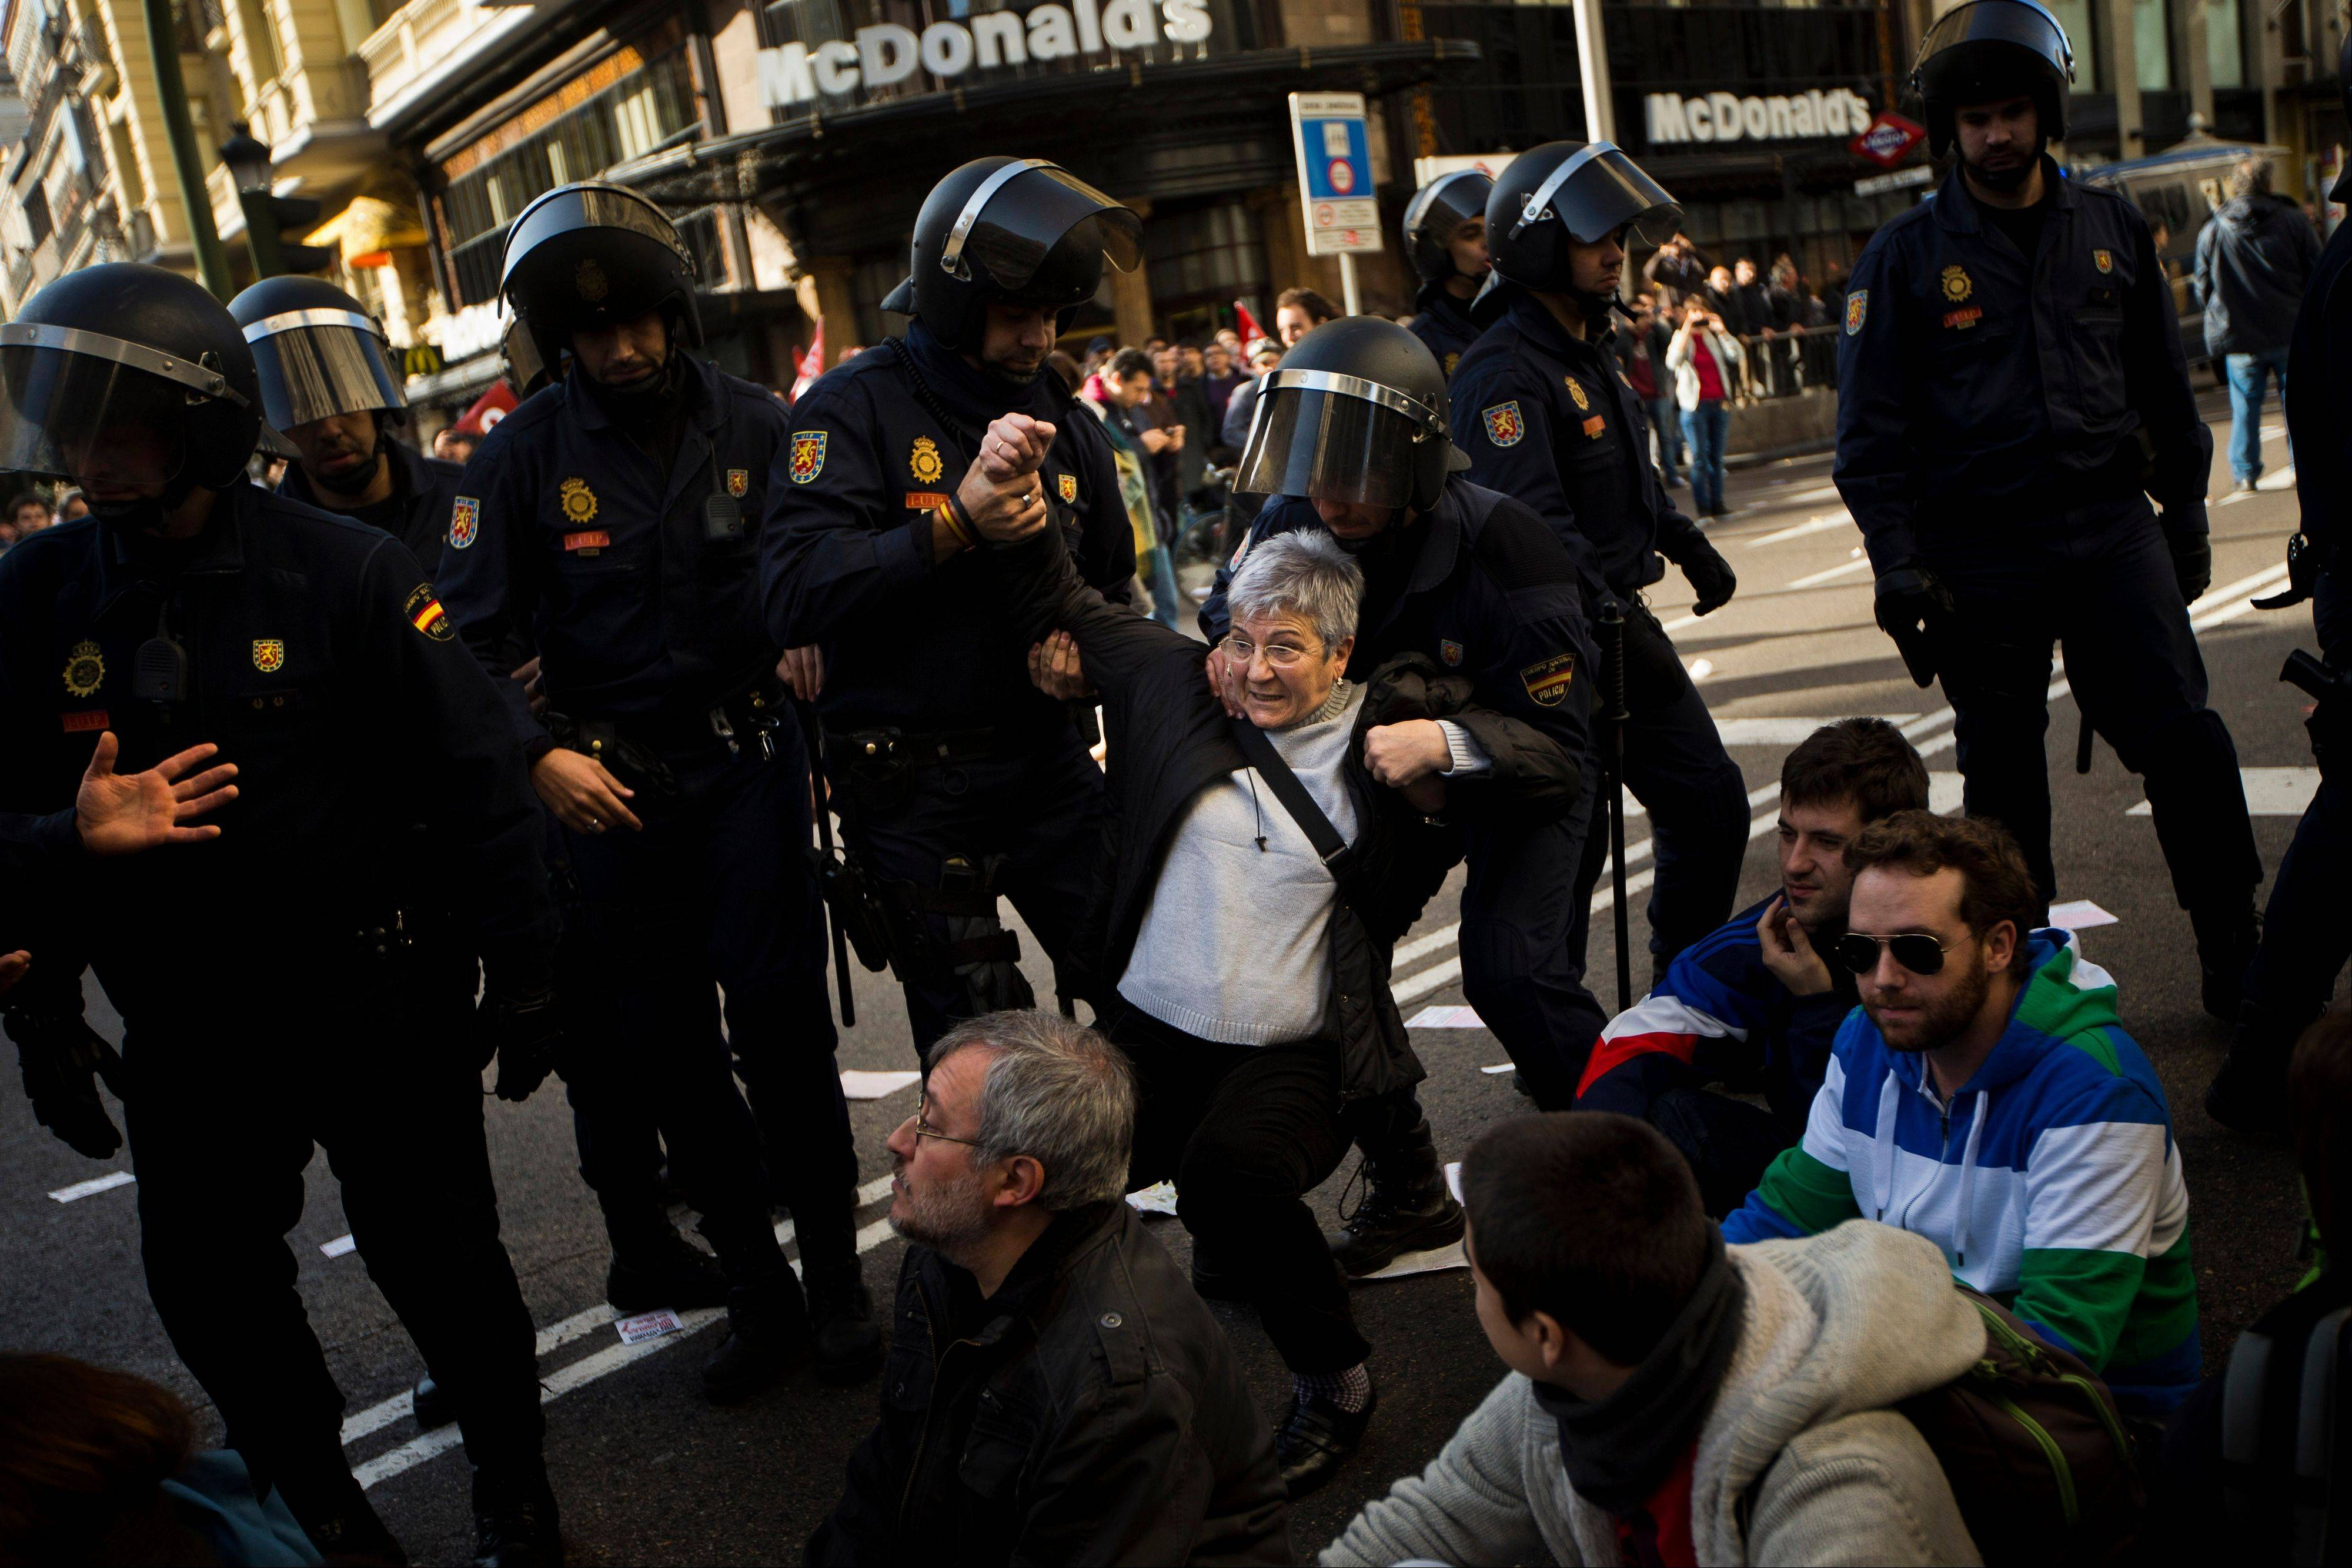 A protester is held by riot police during clashes in a general strike in Madrid, Spain, Wednesday, Nov. 14, 2012. Spain's General Workers' Union said the nationwide stoppage, the second this year, was being observed by nearly all workers in the automobile, energy, shipbuilding and constructions industries.